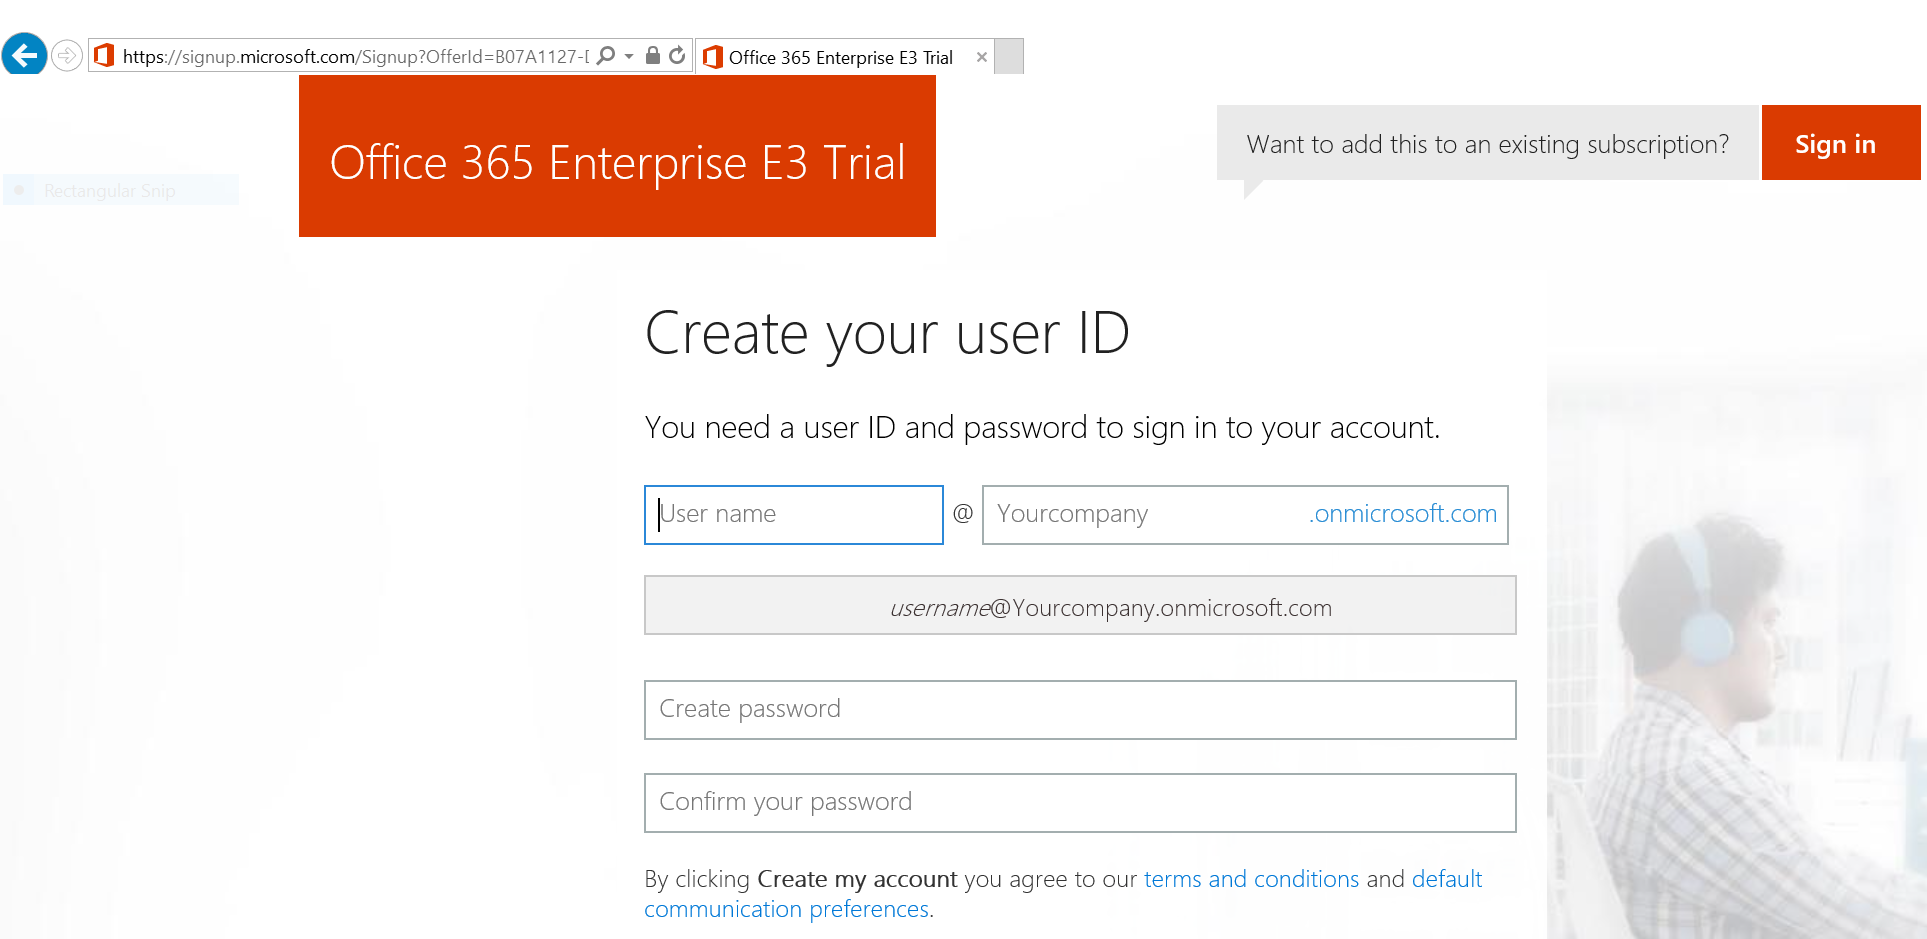 Office 365 trial subscription sign-up